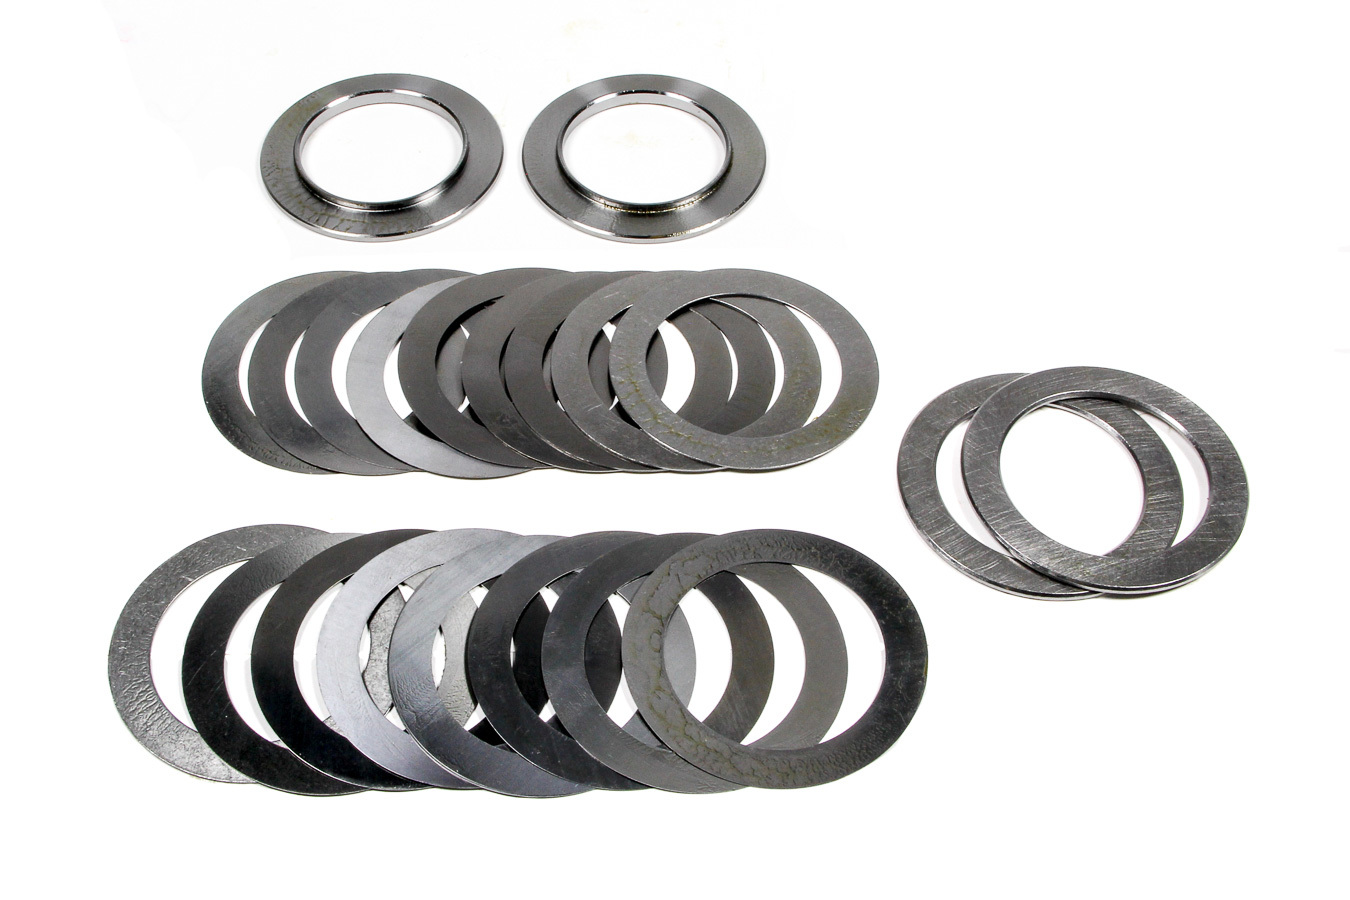 Super Carrier Shim Kit - Ford 8.8 & GM 12 bolt